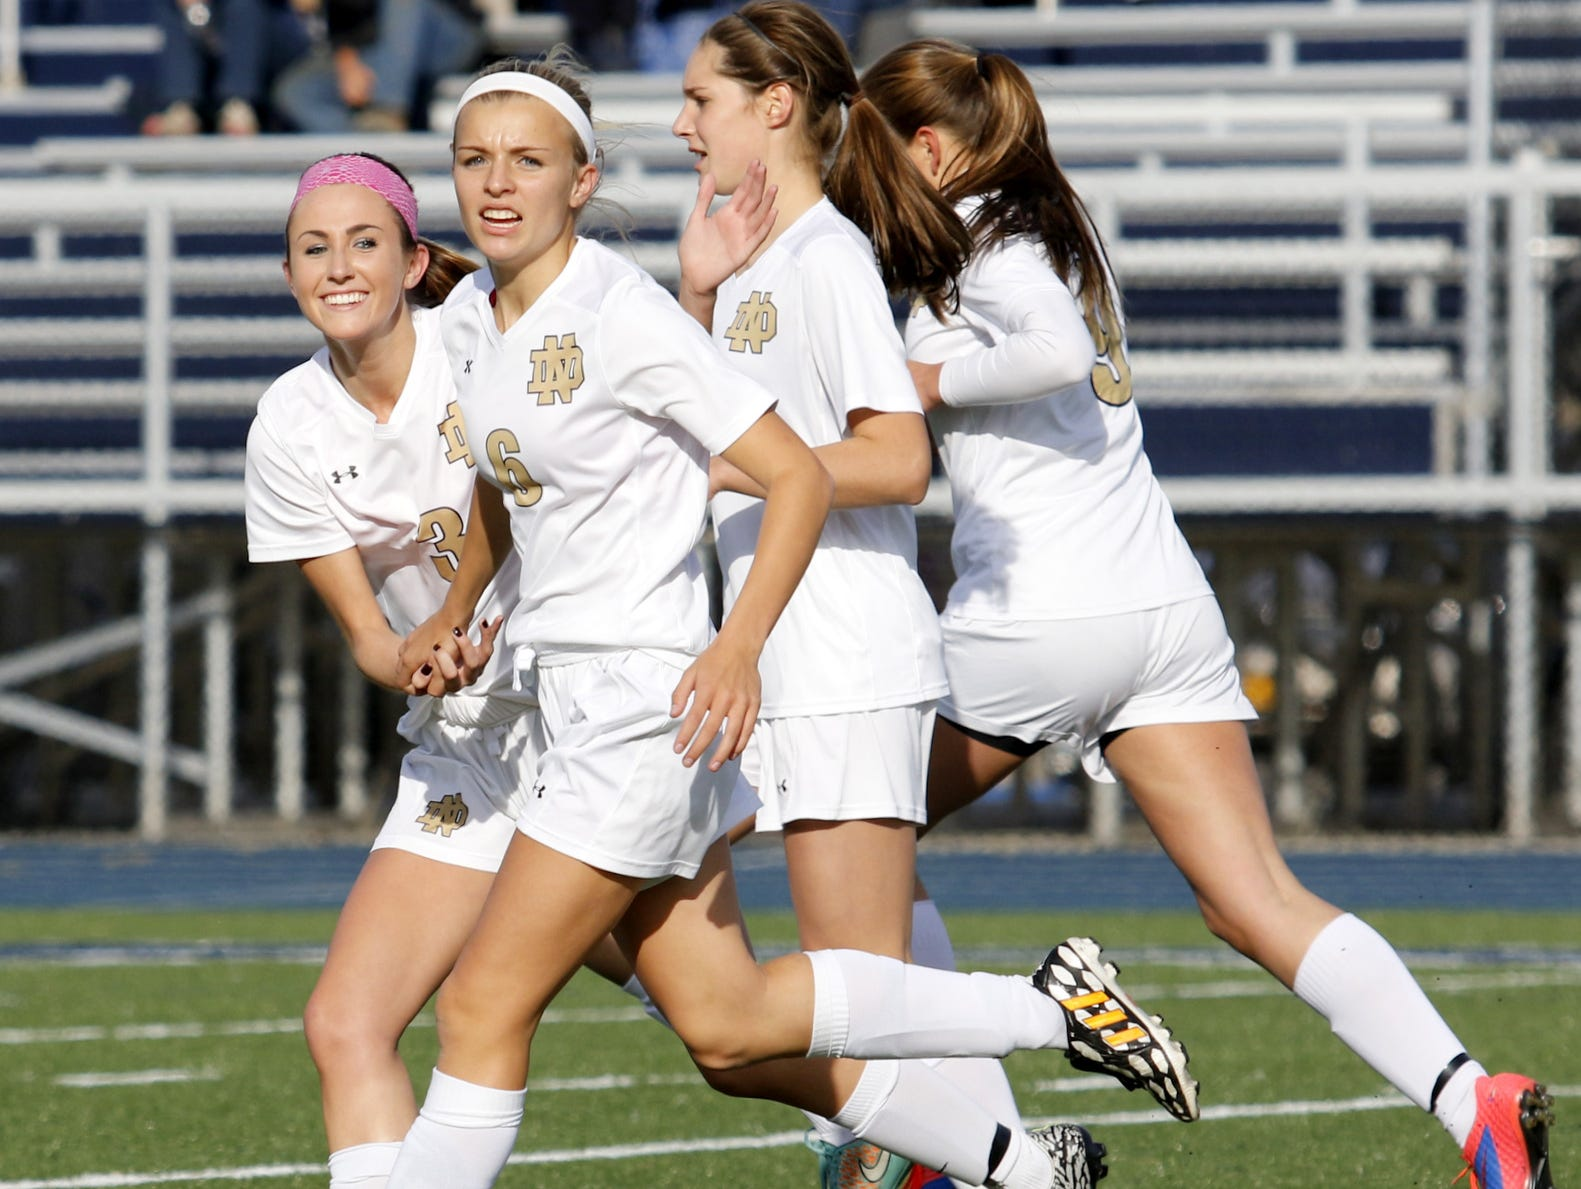 Notre Dame players celebrate a goal during their win over Trumansburg in the Section 4 Class C semifinals.